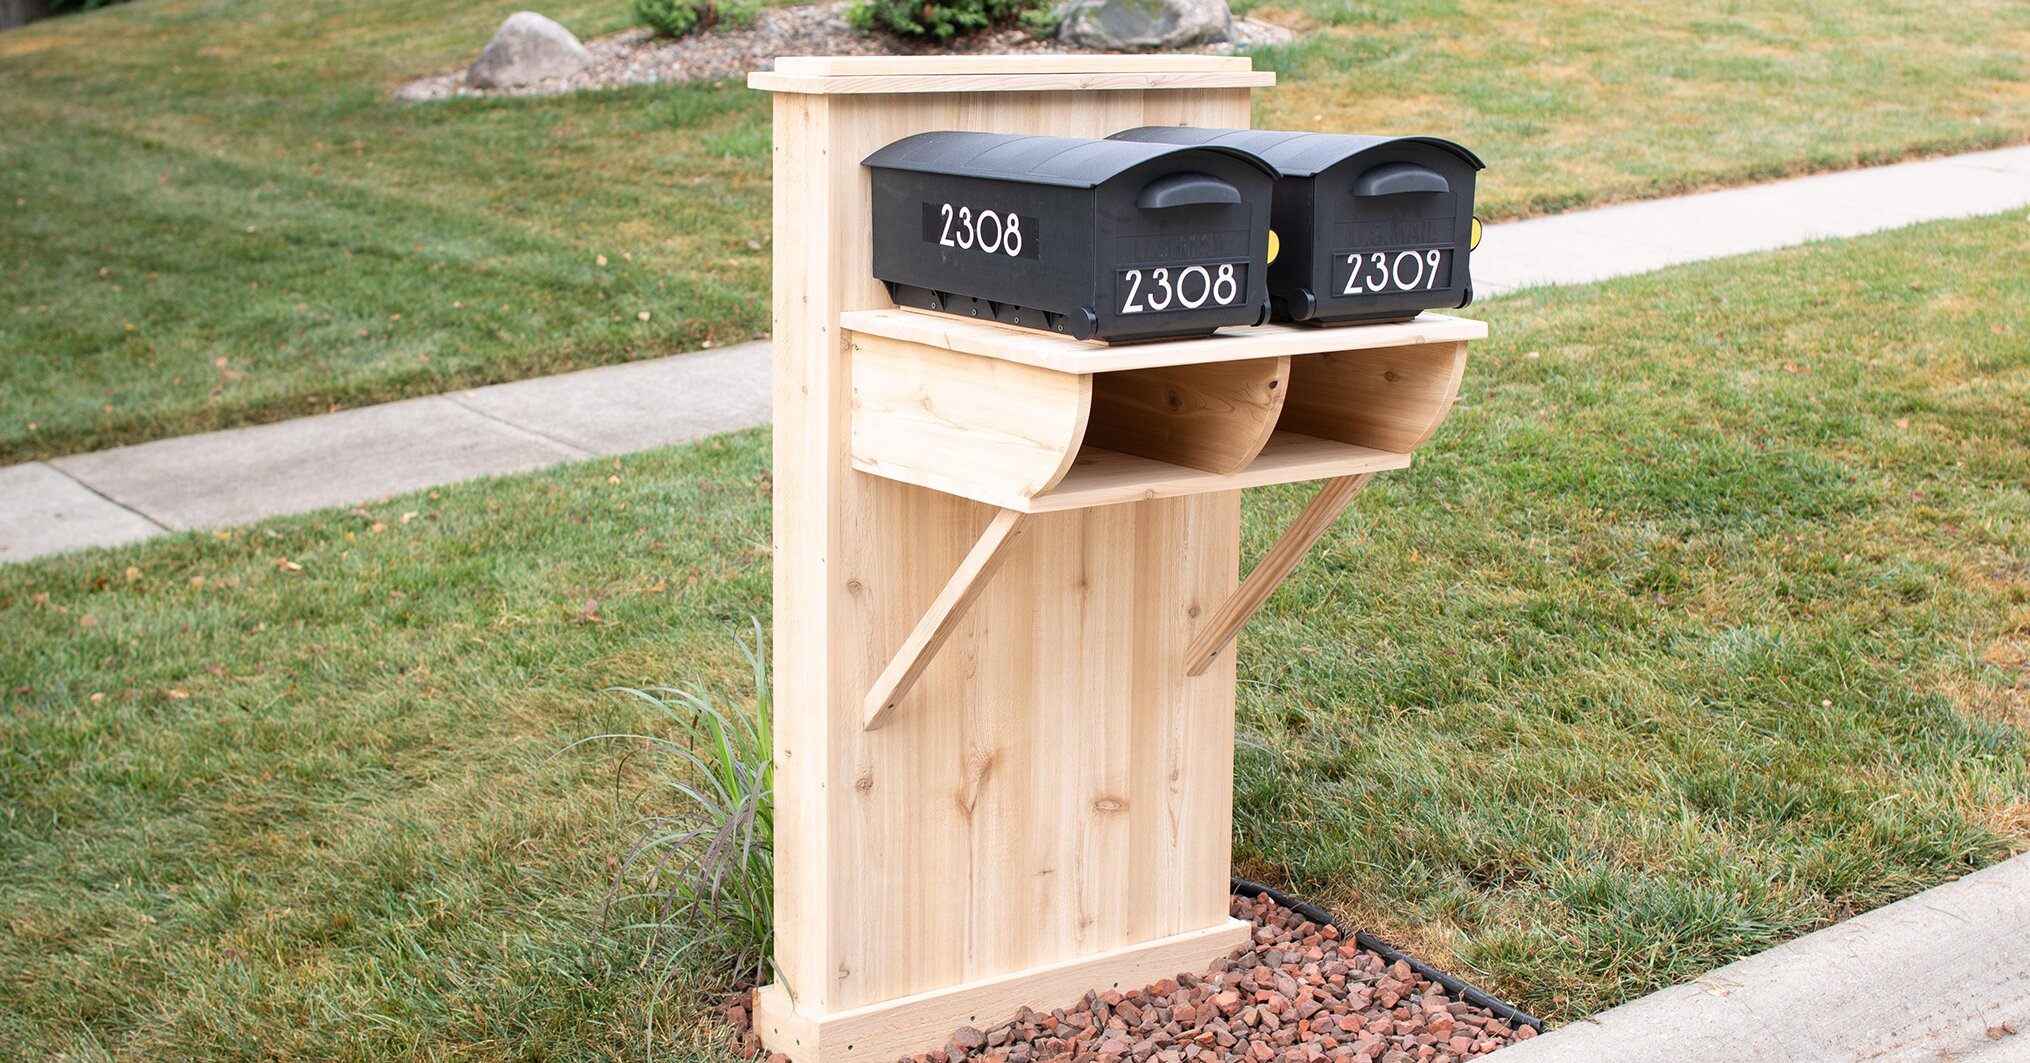 Make Your Mailbox Look Like a Million Bucks with This DIY Design